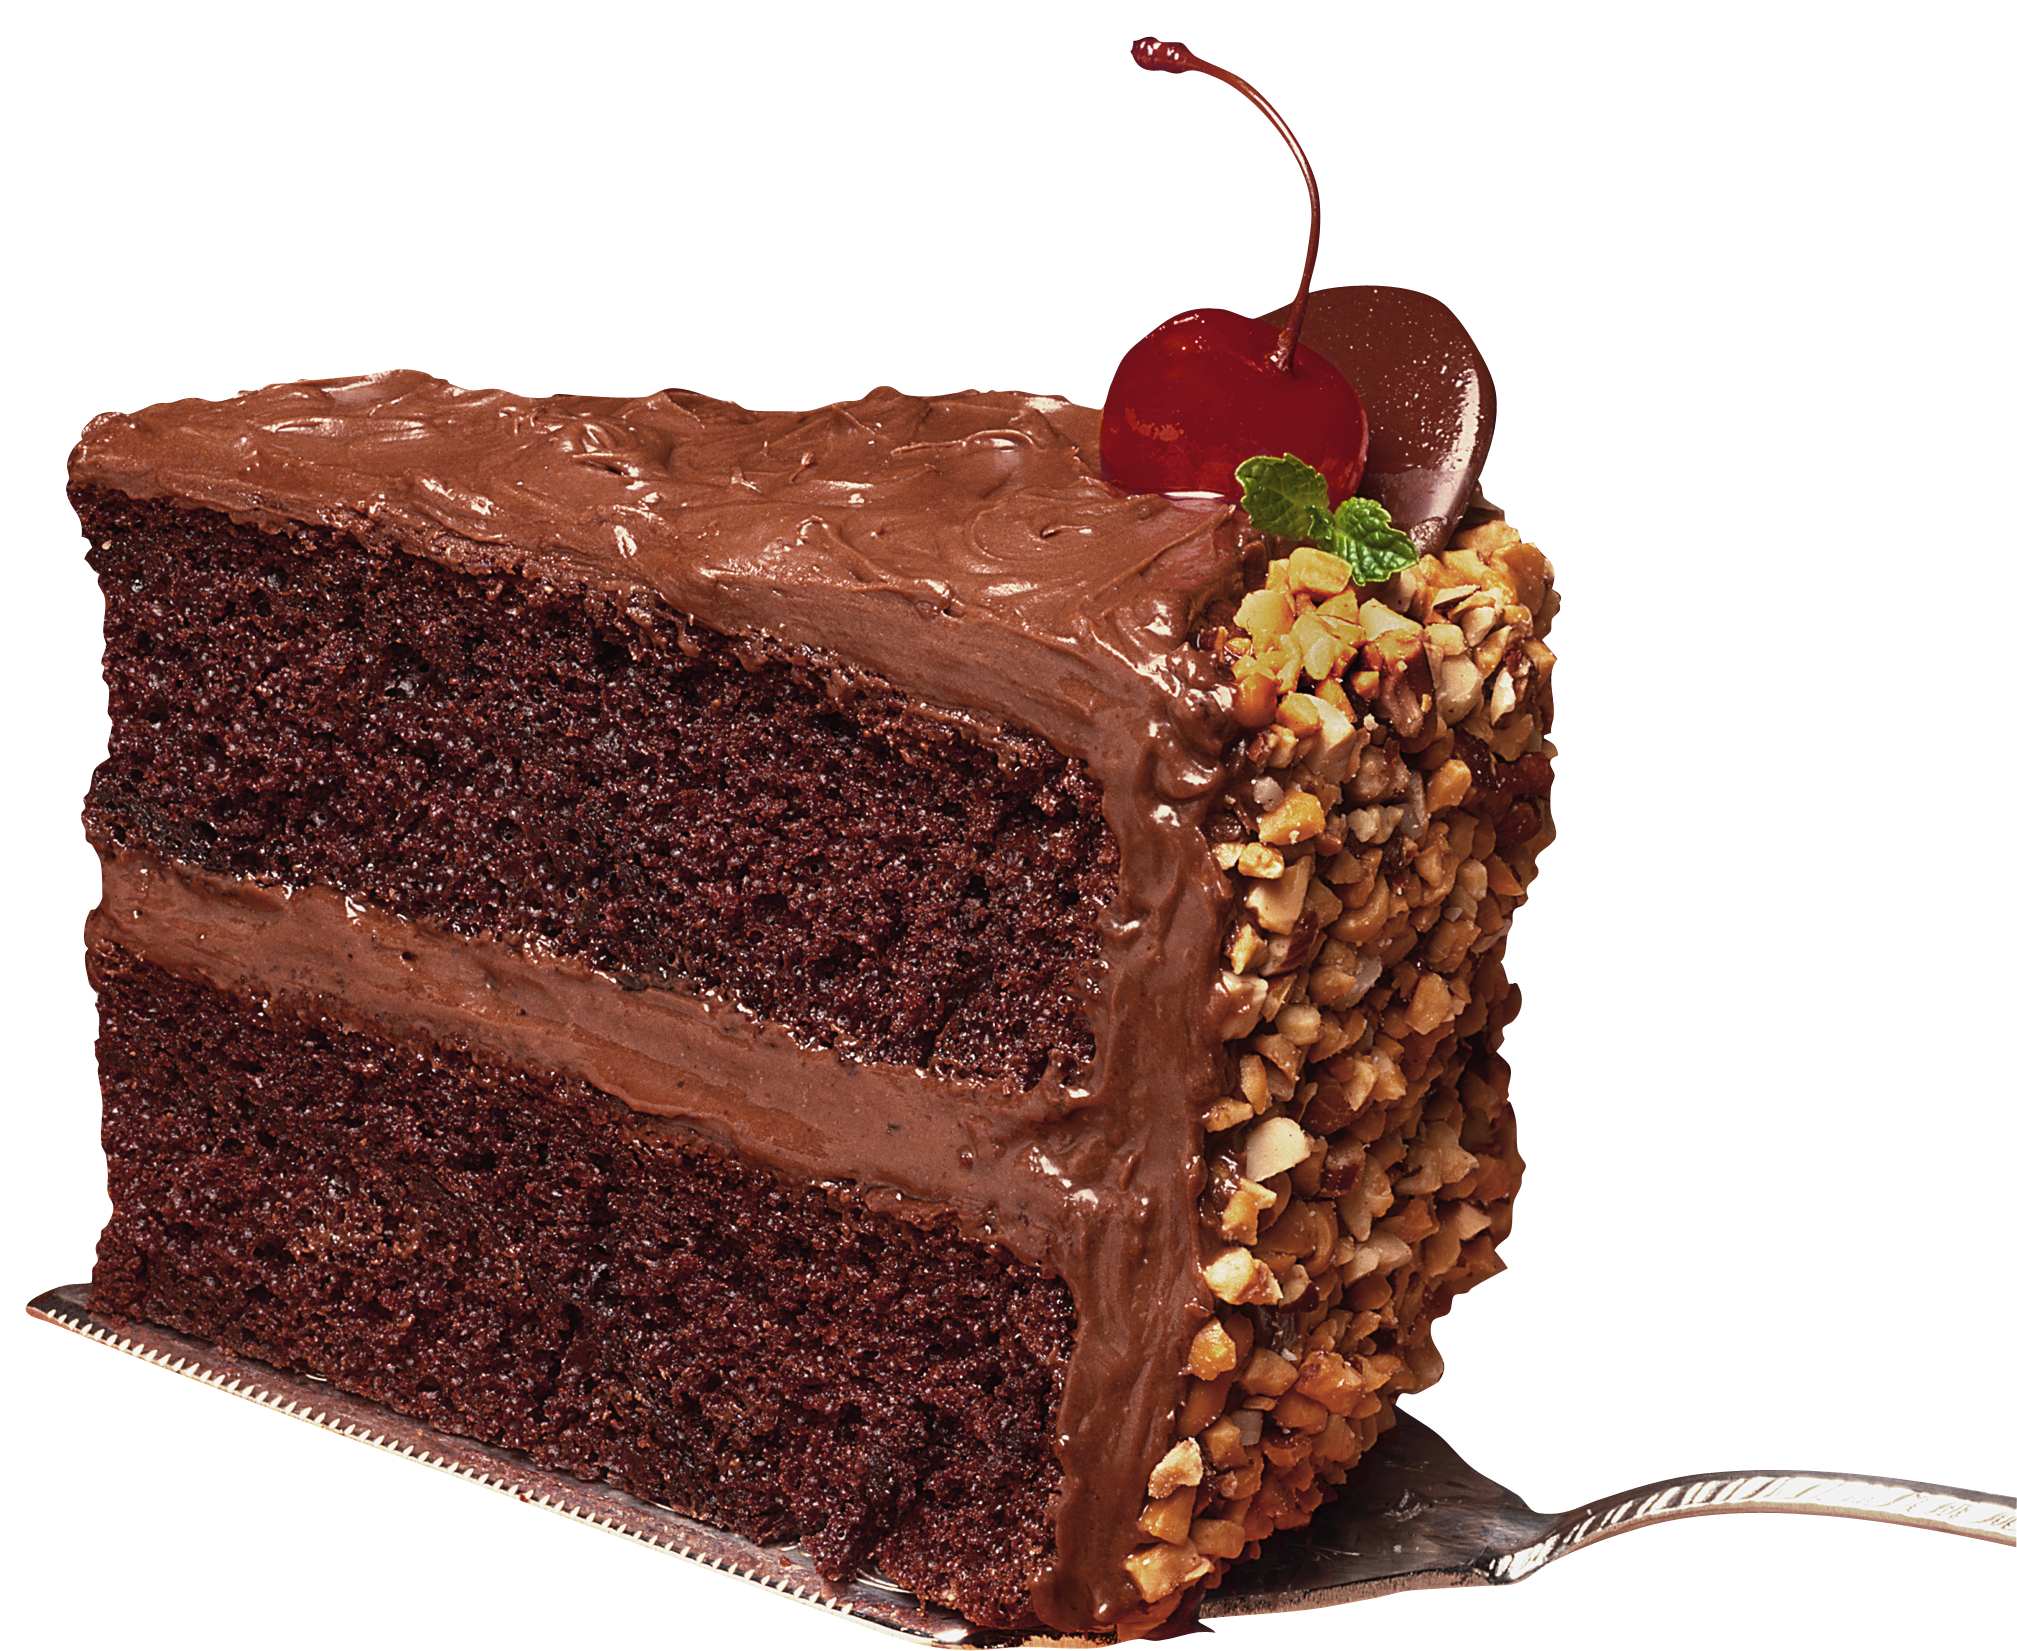 Slice of png picture. Clipart cake german chocolate cake